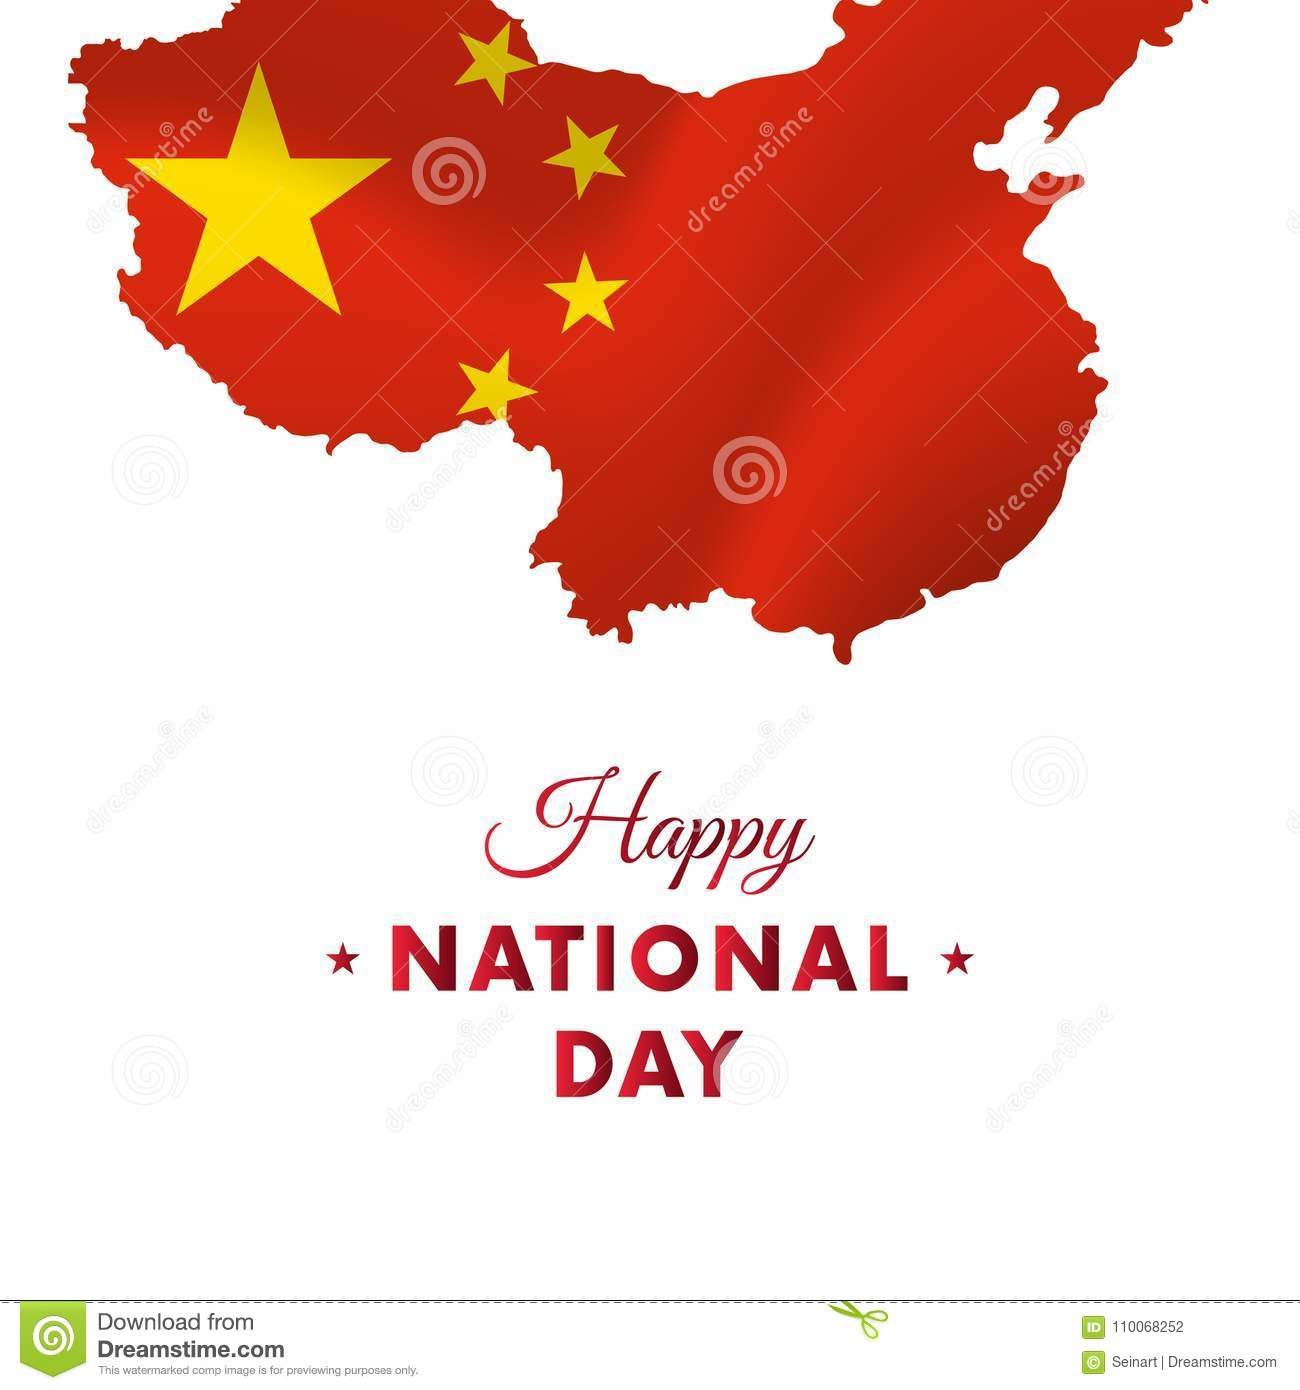 China Map Poster.Banner Or Poster Of China National Day Celebration China Map